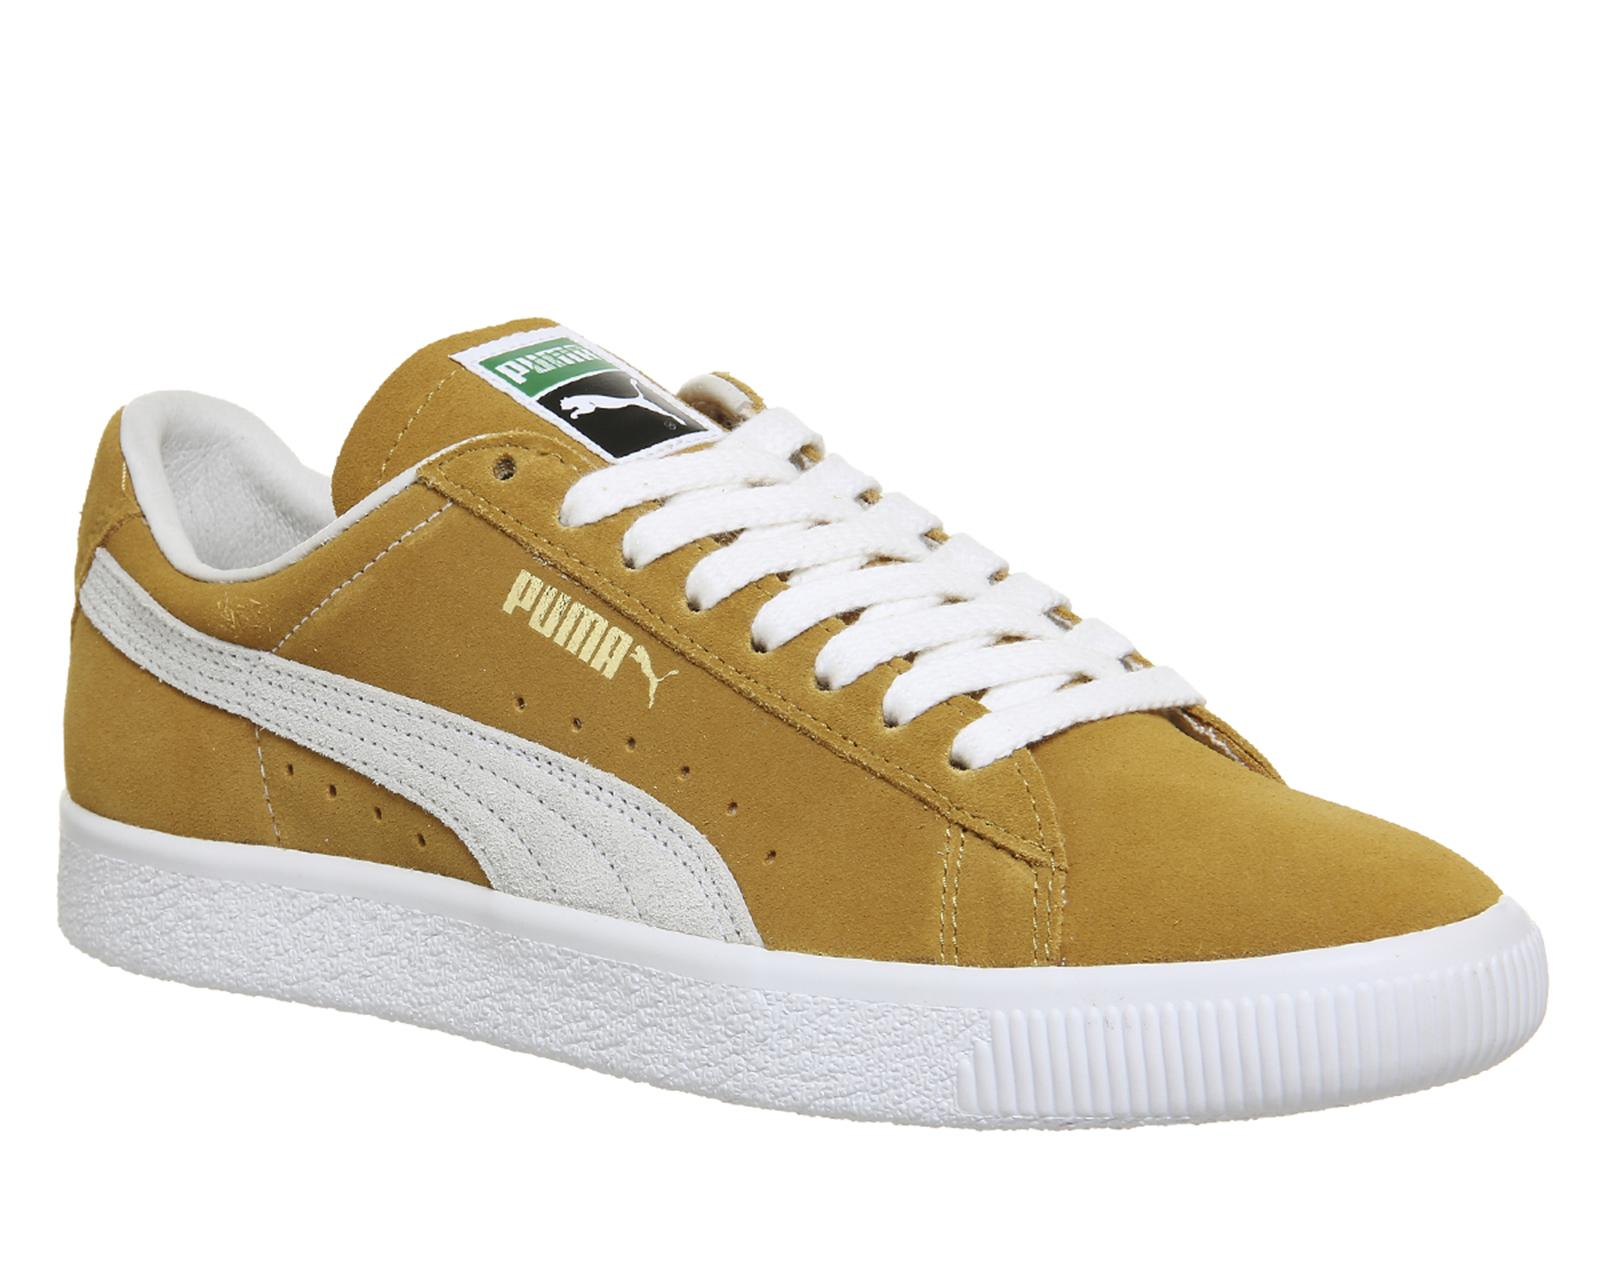 9251bece4750 Lyst - PUMA Suede Classic Trainers in White for Men